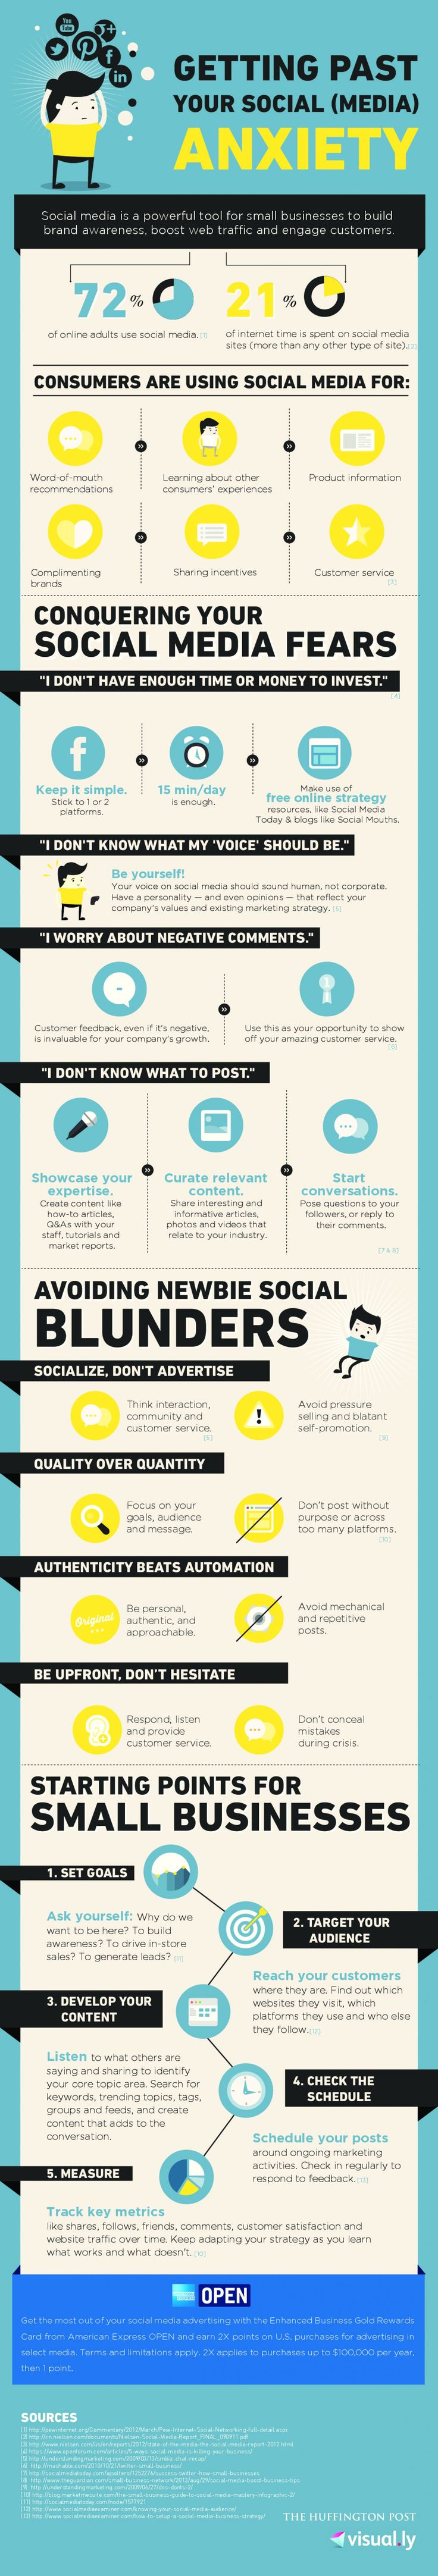 Getting Past Your Social Media Anxiety #infographic http://its-time.laptoplifestyleforme.com